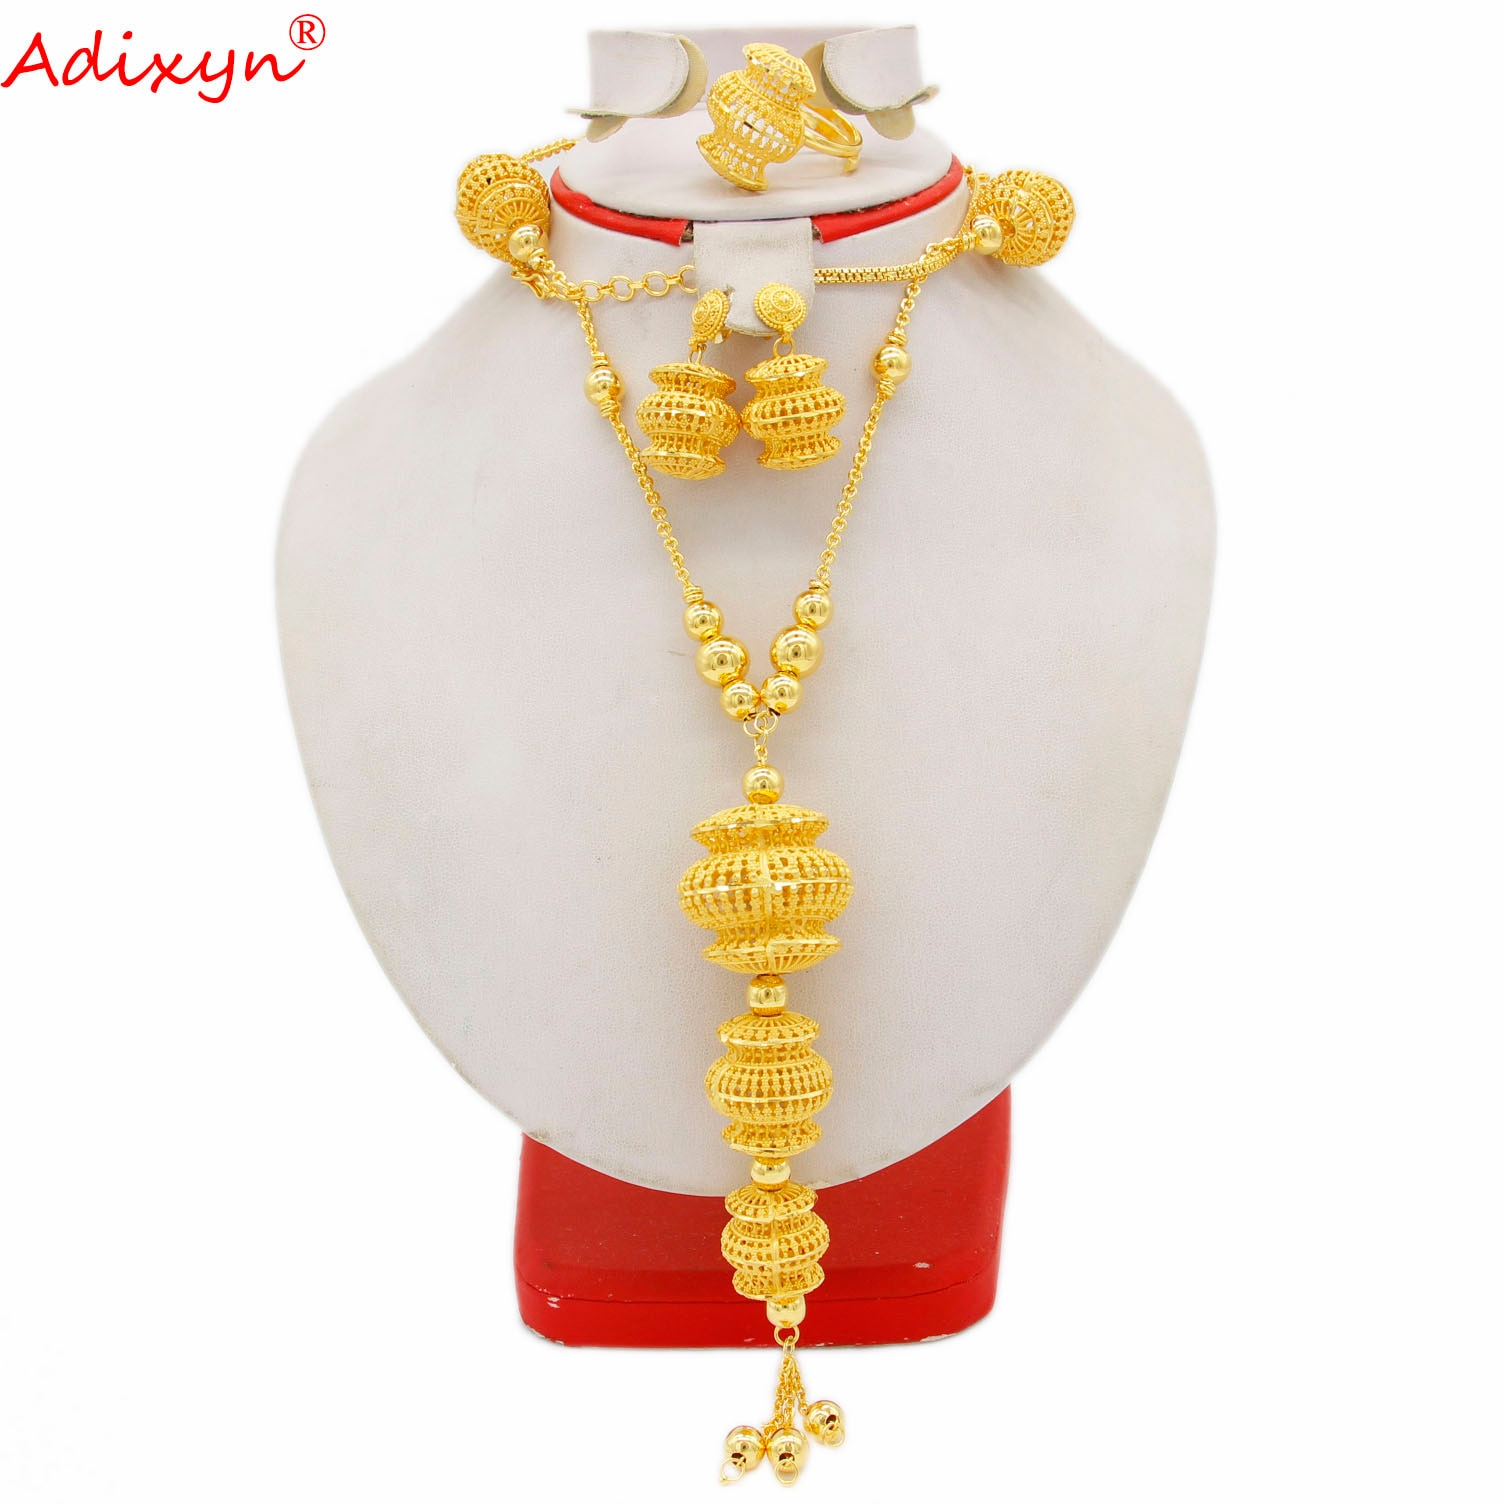 Review Adixyn Dubai 24K Gold Color Jewelry sets for Women Inidan Necklace Earrings Ring Set Bridal Wedding Gifts N082811